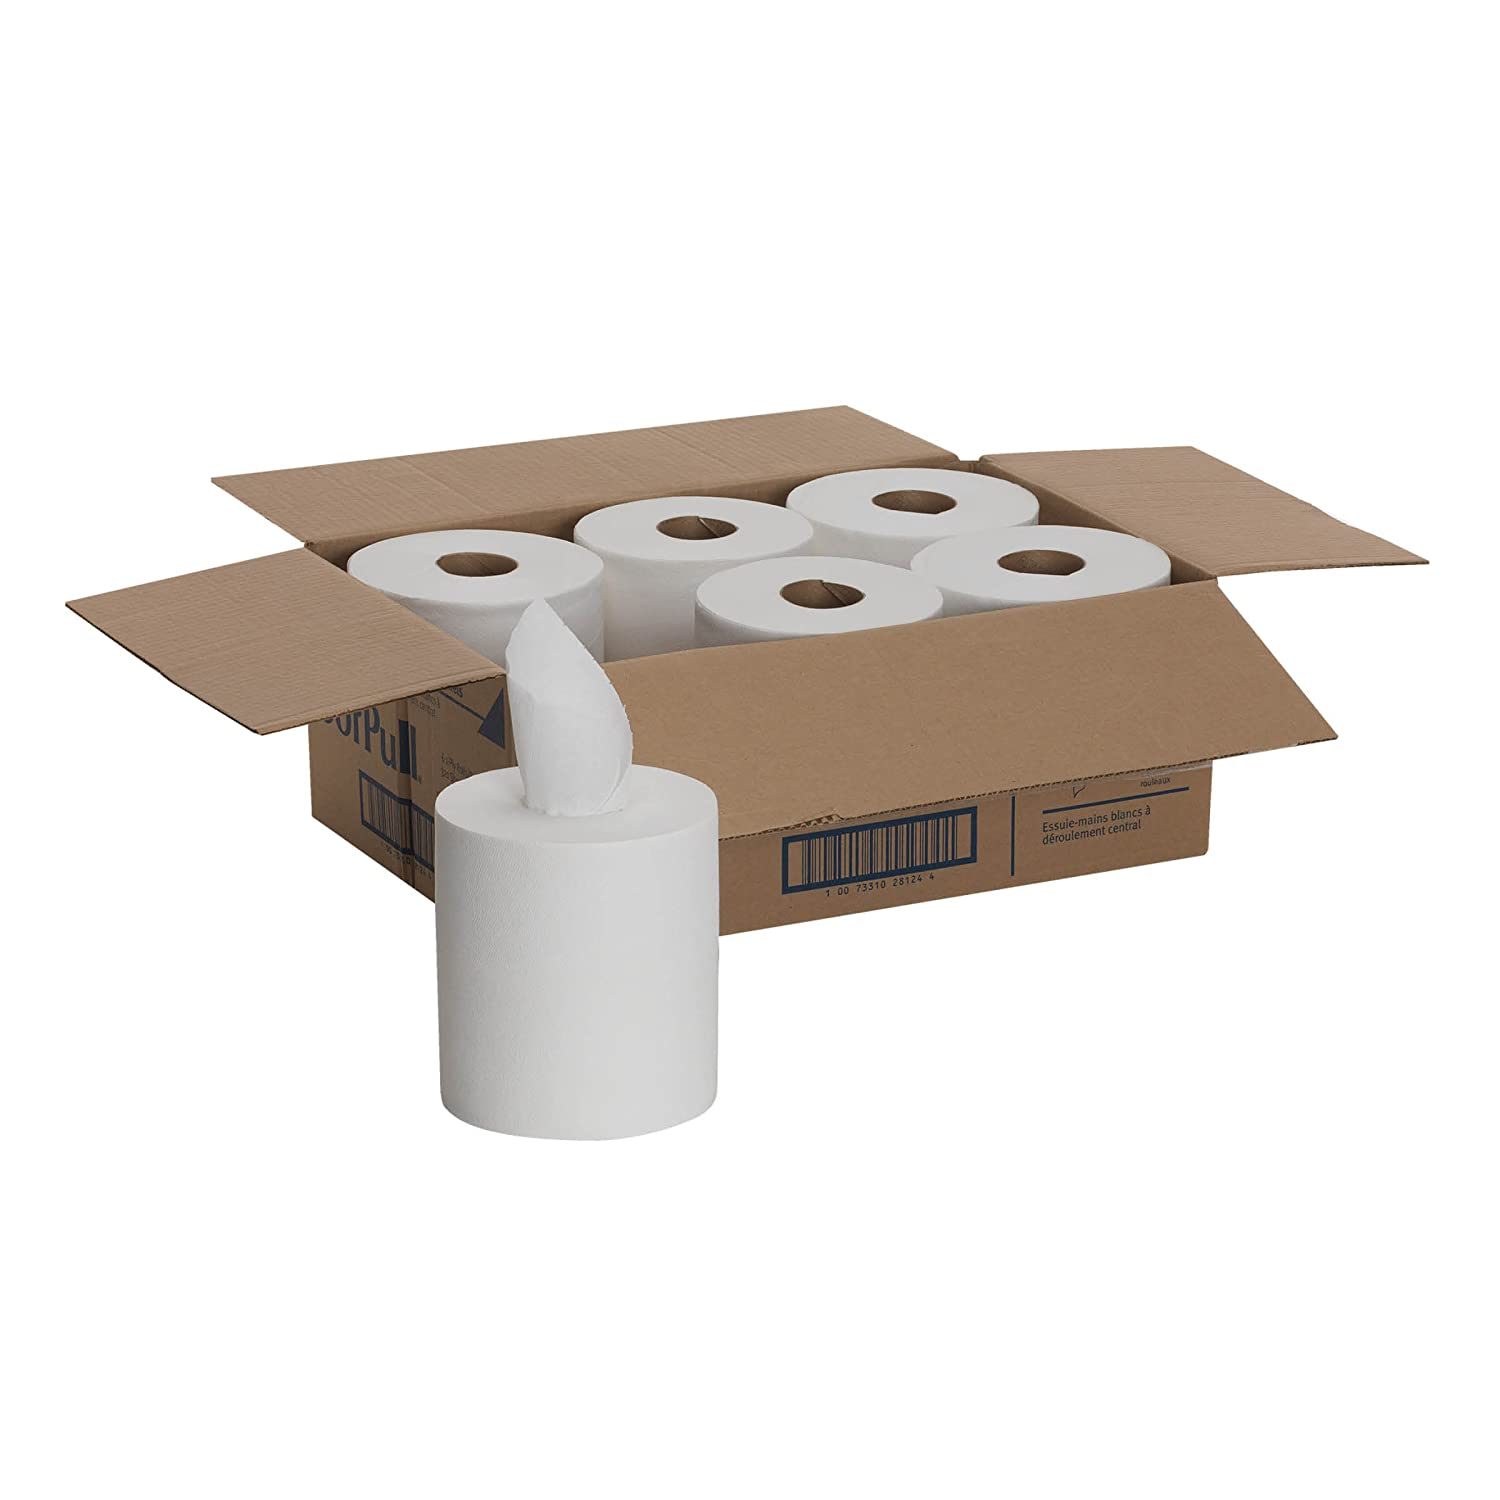 Center-Pull Perforated Paper Towels, 7-3/4 x 15, White, 320/Roll, 6/Carton (並行輸入品) B0017DETBA  1ケース、リフィル6本入り